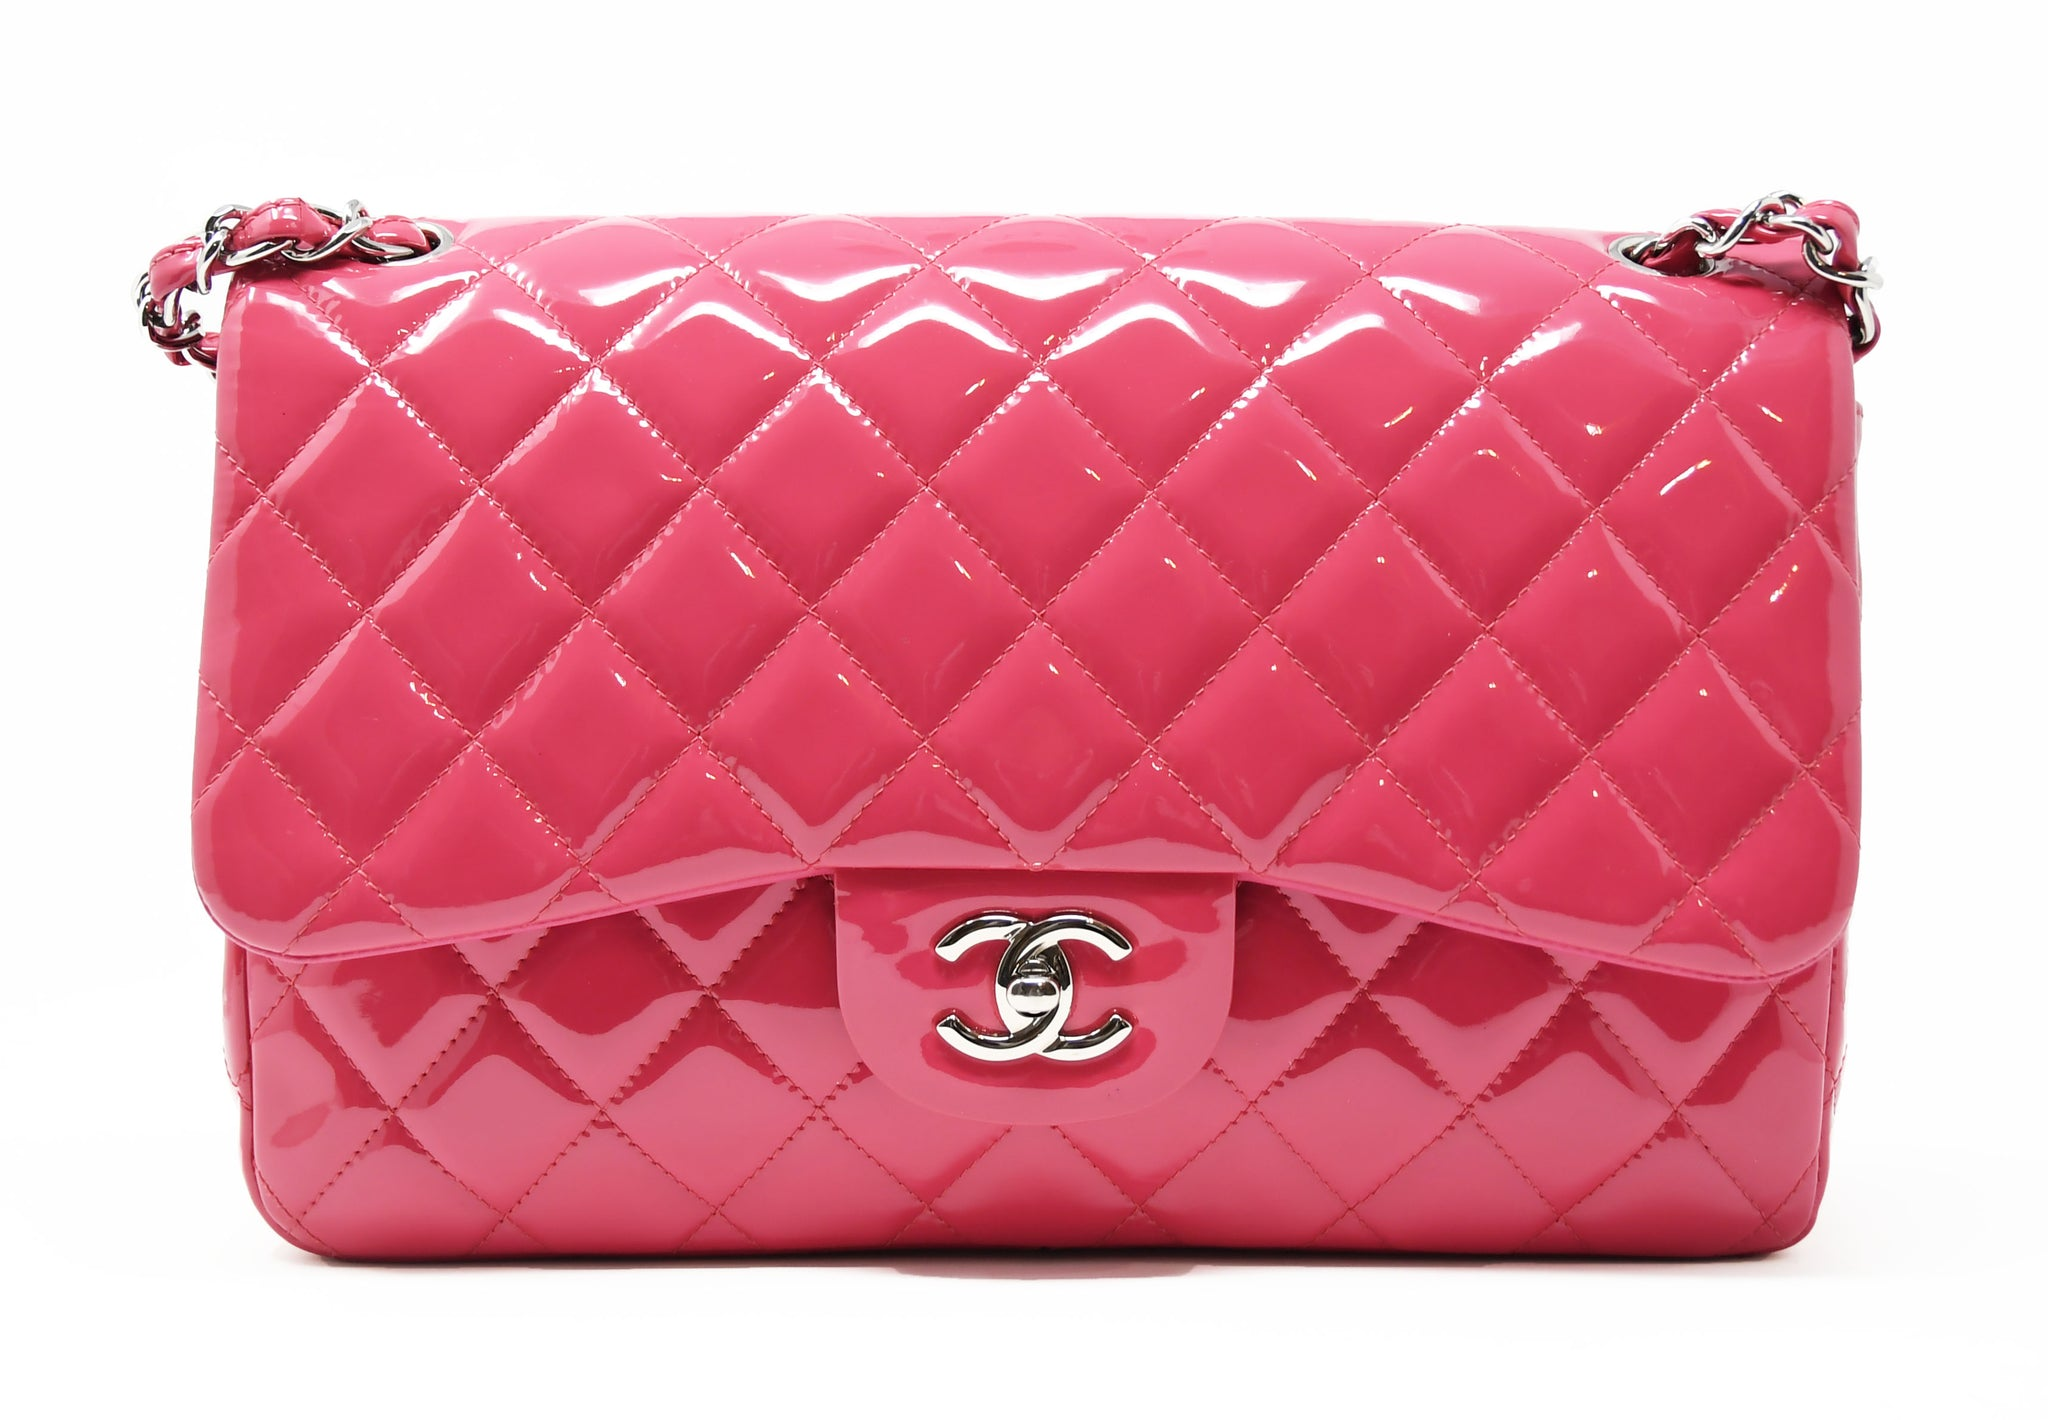 Chanel Jumbo Double Fold Bag in Pink Patent Leather